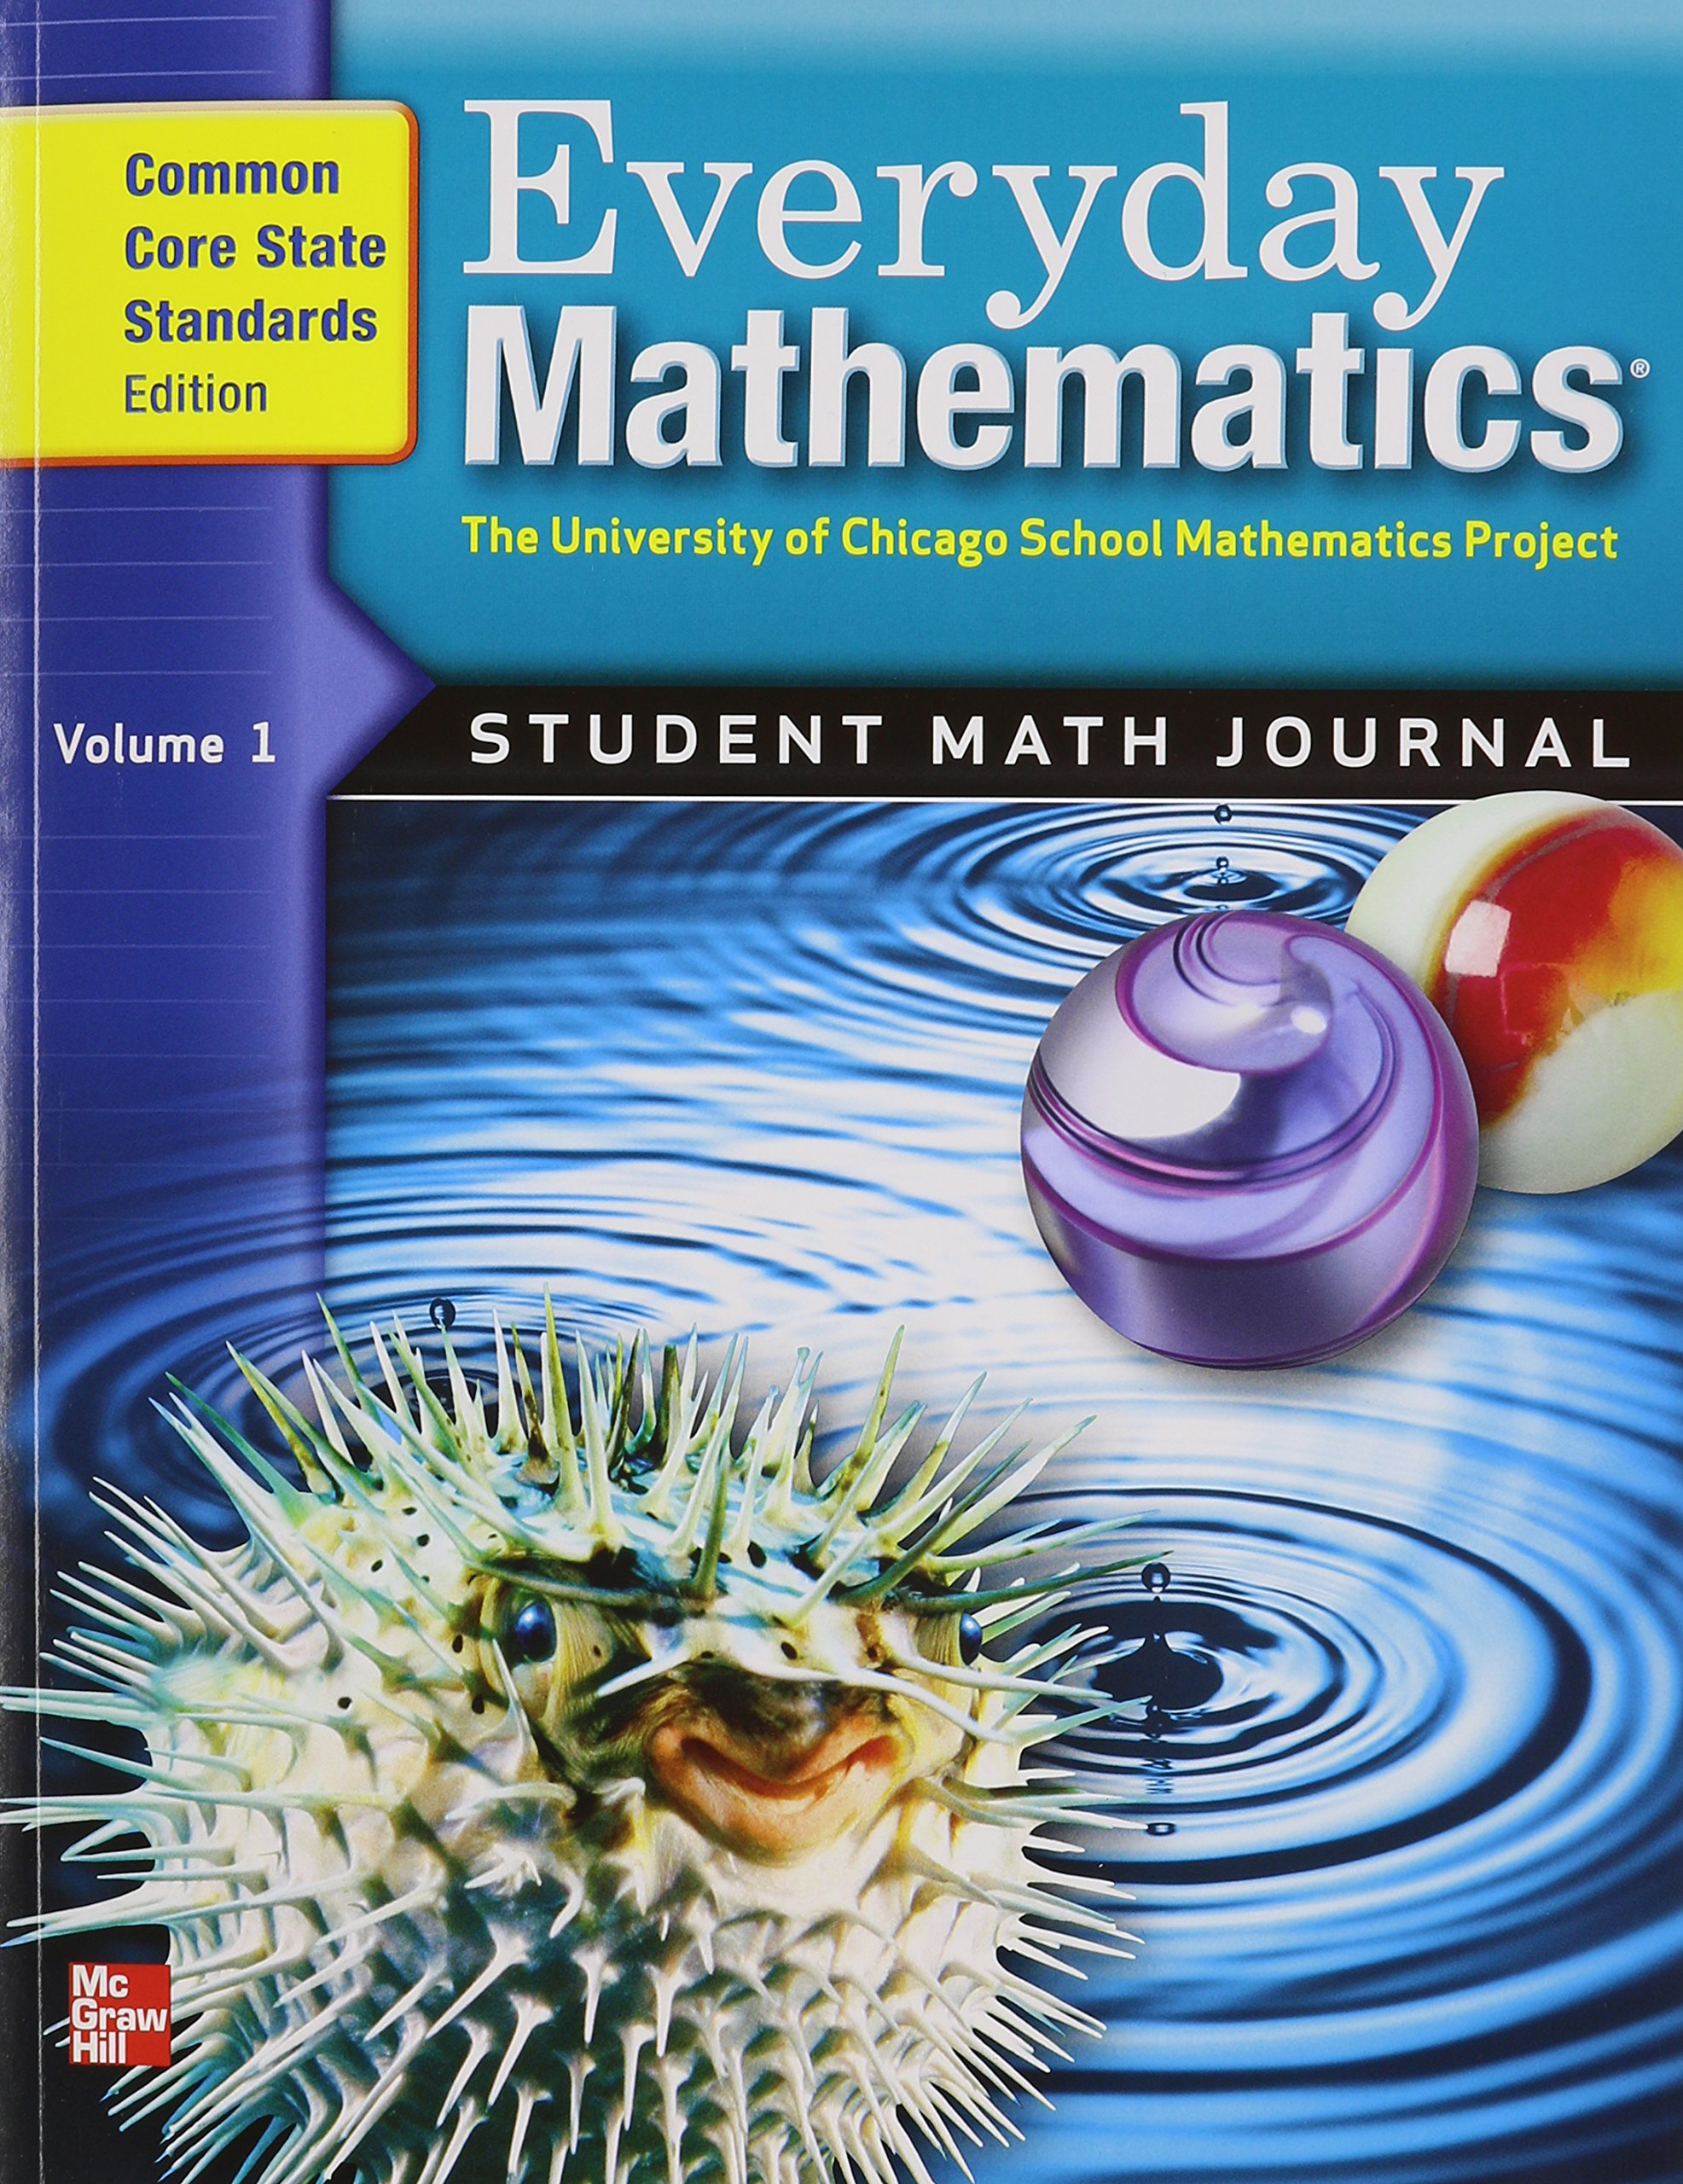 Worksheets Everyday Mathematics Worksheets everyday mathematics grade 5 worksheets abitlikethis em4 at home mathematics